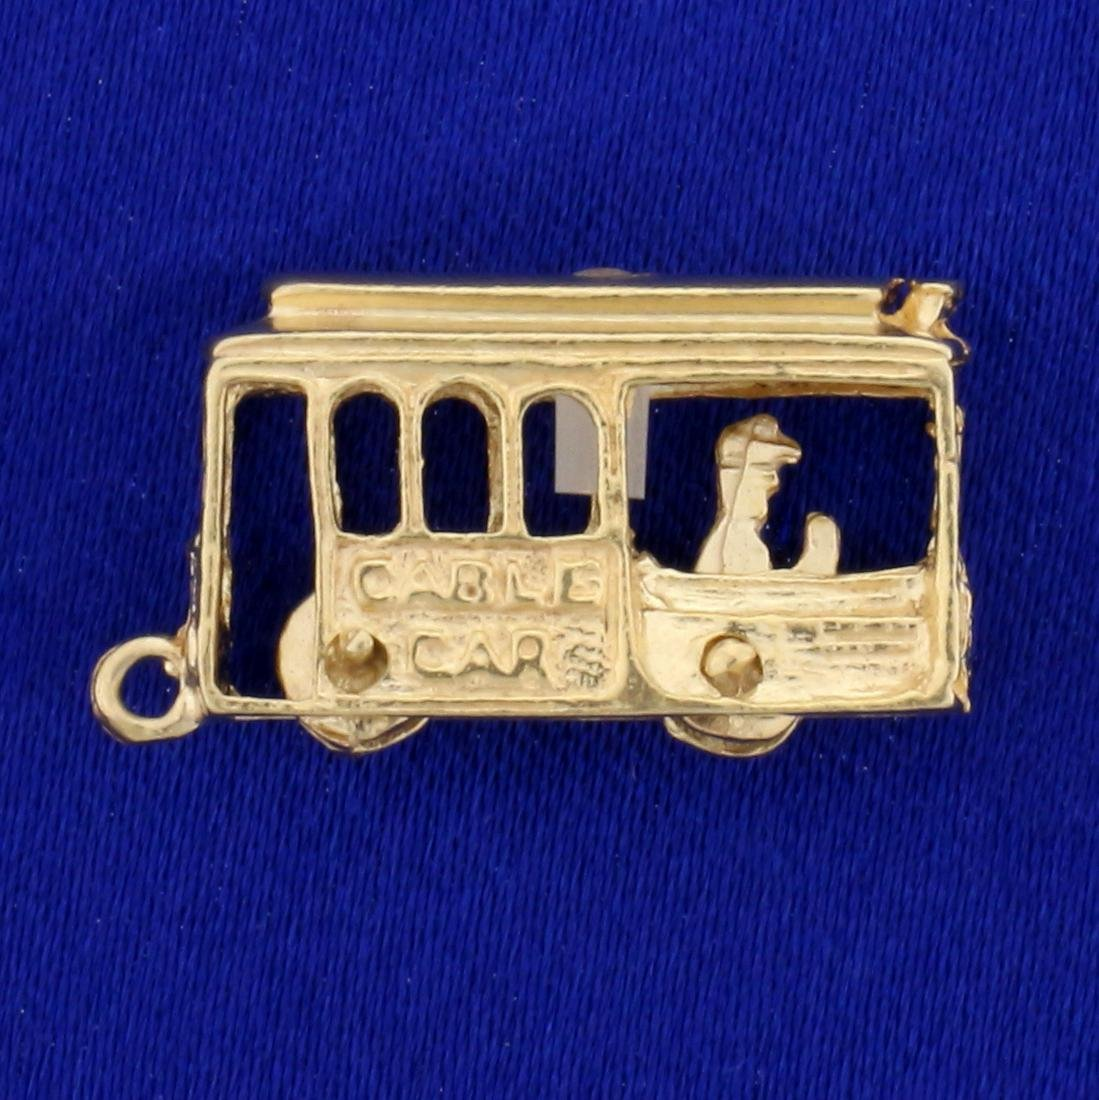 Mechanical San Francisco Cable Car Charm or Pendant in